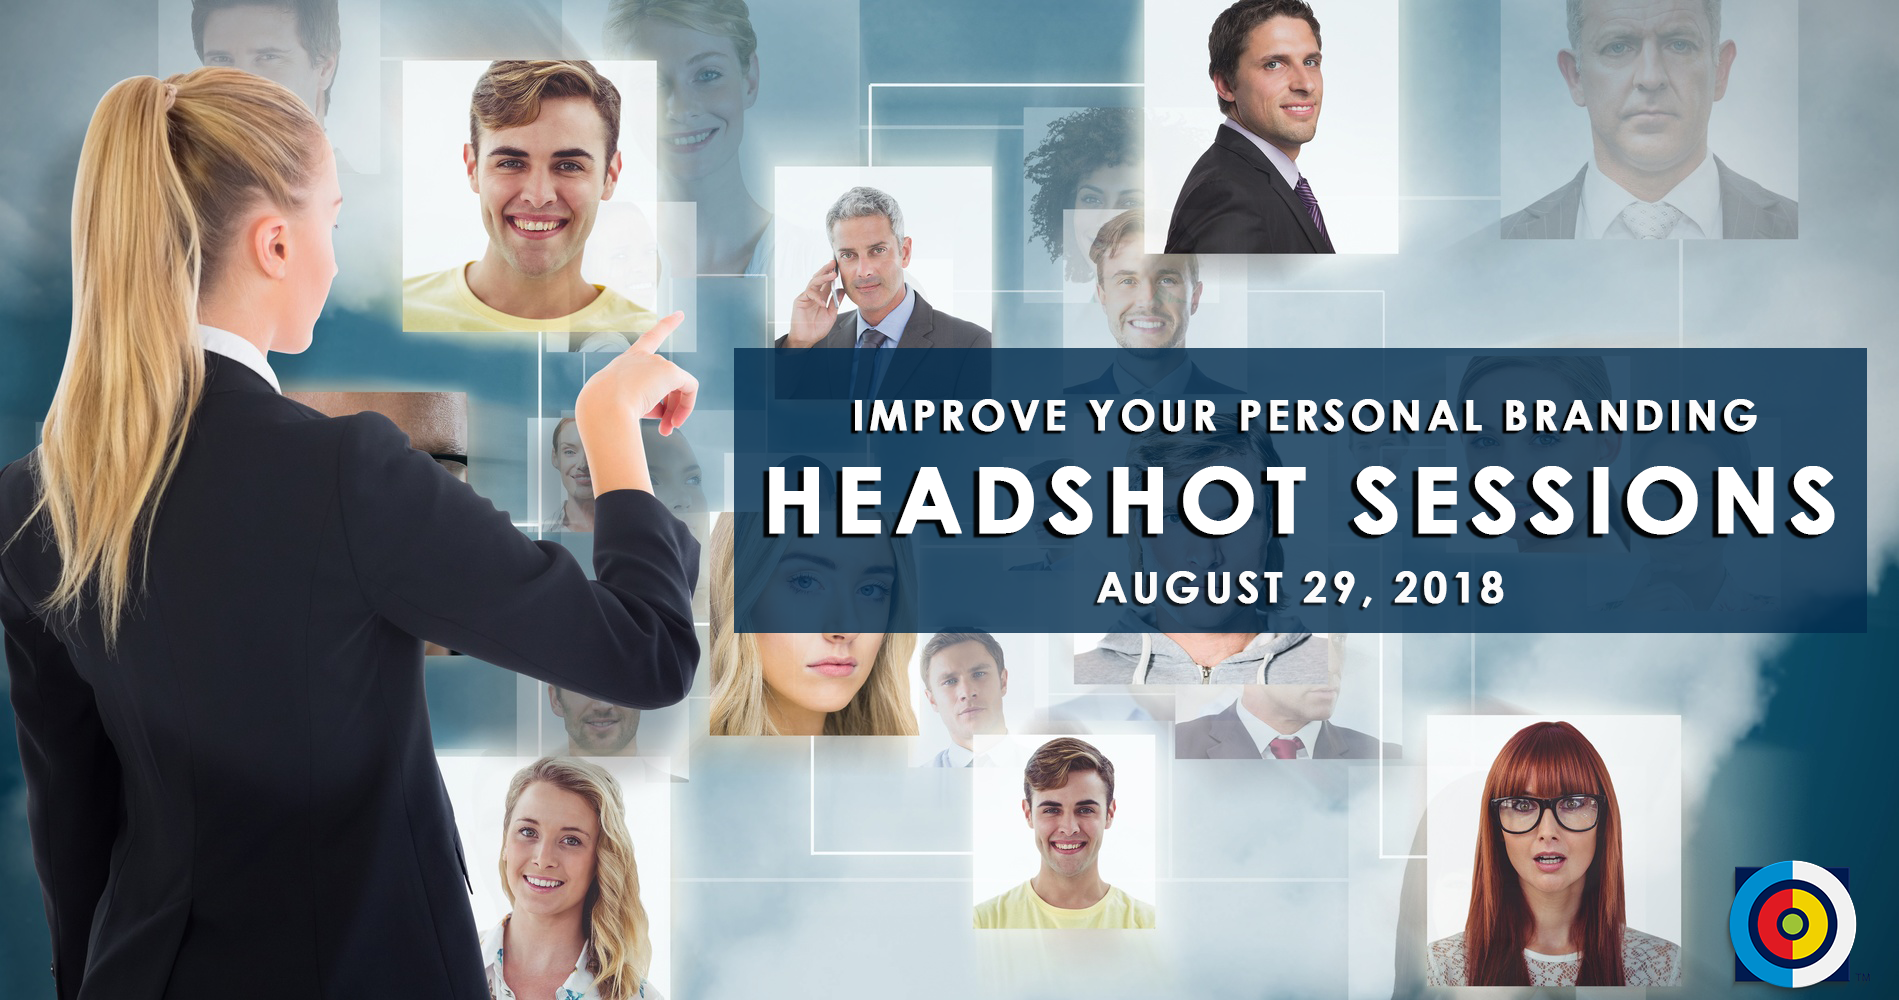 Headshot Session event, a Doral Chamber of Commerce event.